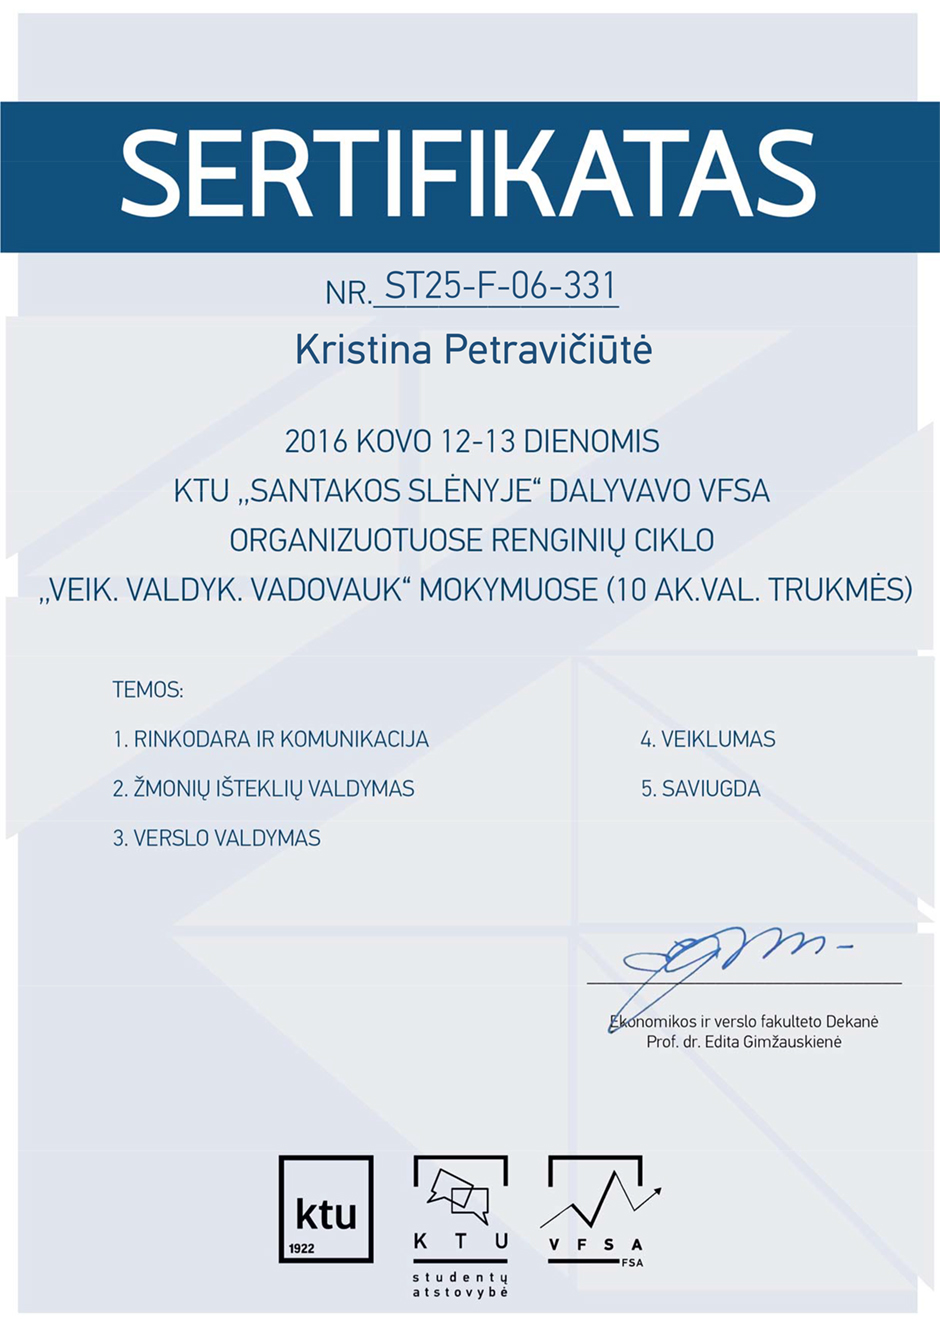 Kristina Petraviciute - Do. Manage. Lead. certificate 2016